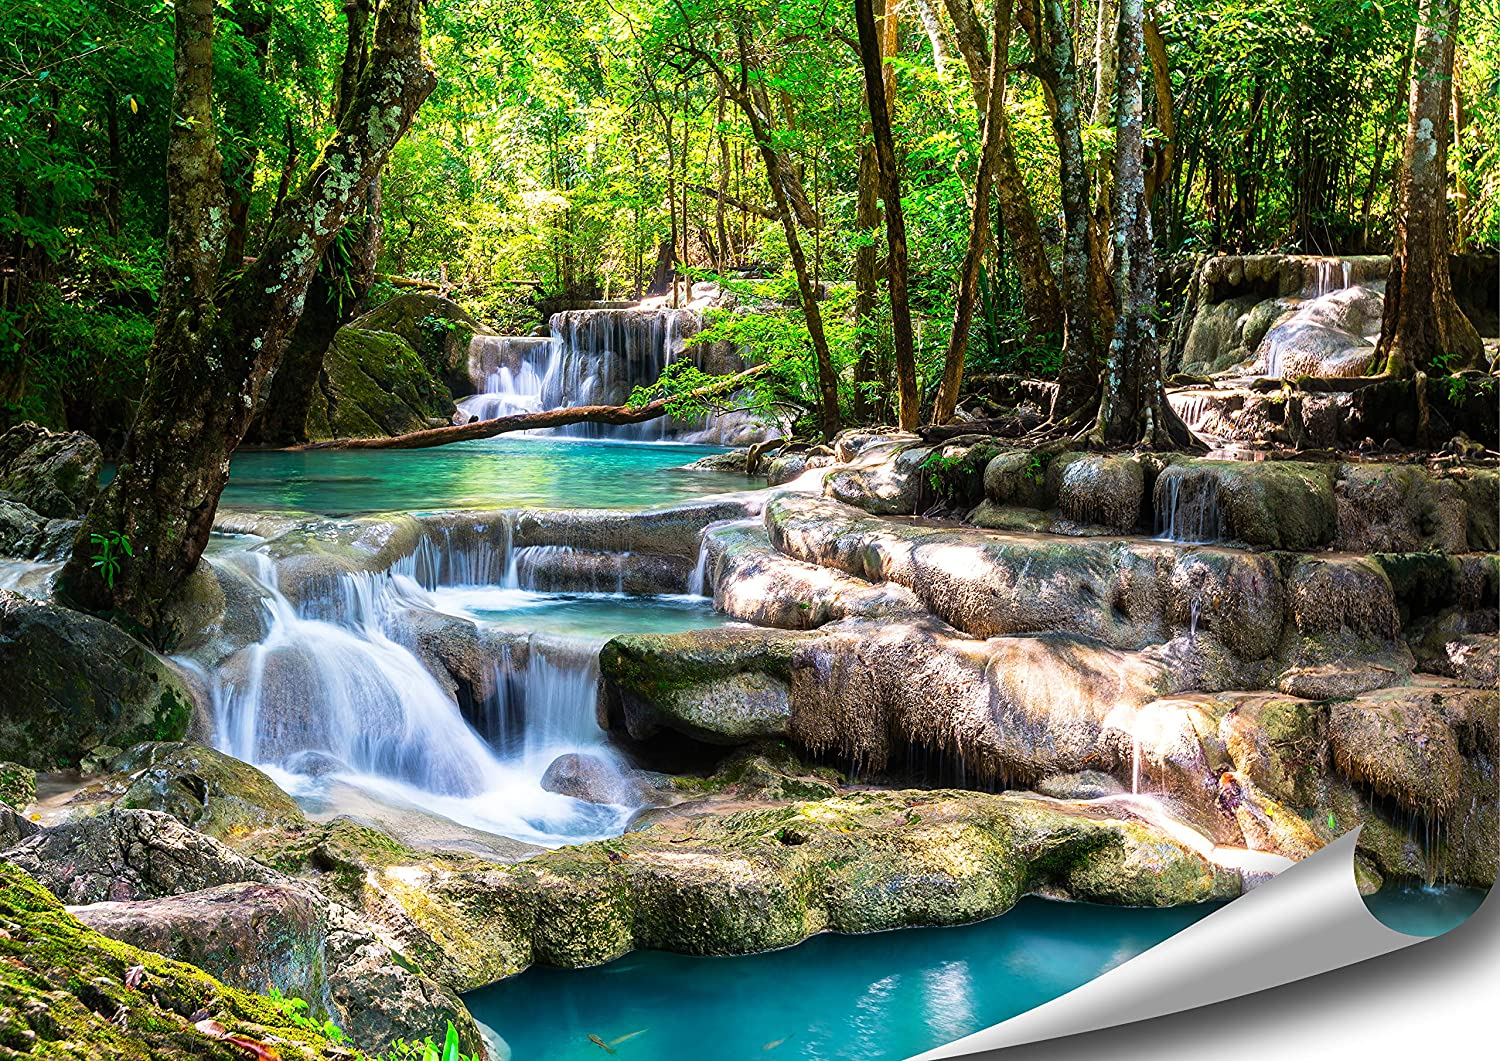 Artbay Tropical Waterfall In The Forest Poster Xxl 46 8 X 33 1 Inch 118 8 X 84 Cm Enchanting Waterfall In A Sun Flooded Forest Nature Poster Amazon In Home Kitchen